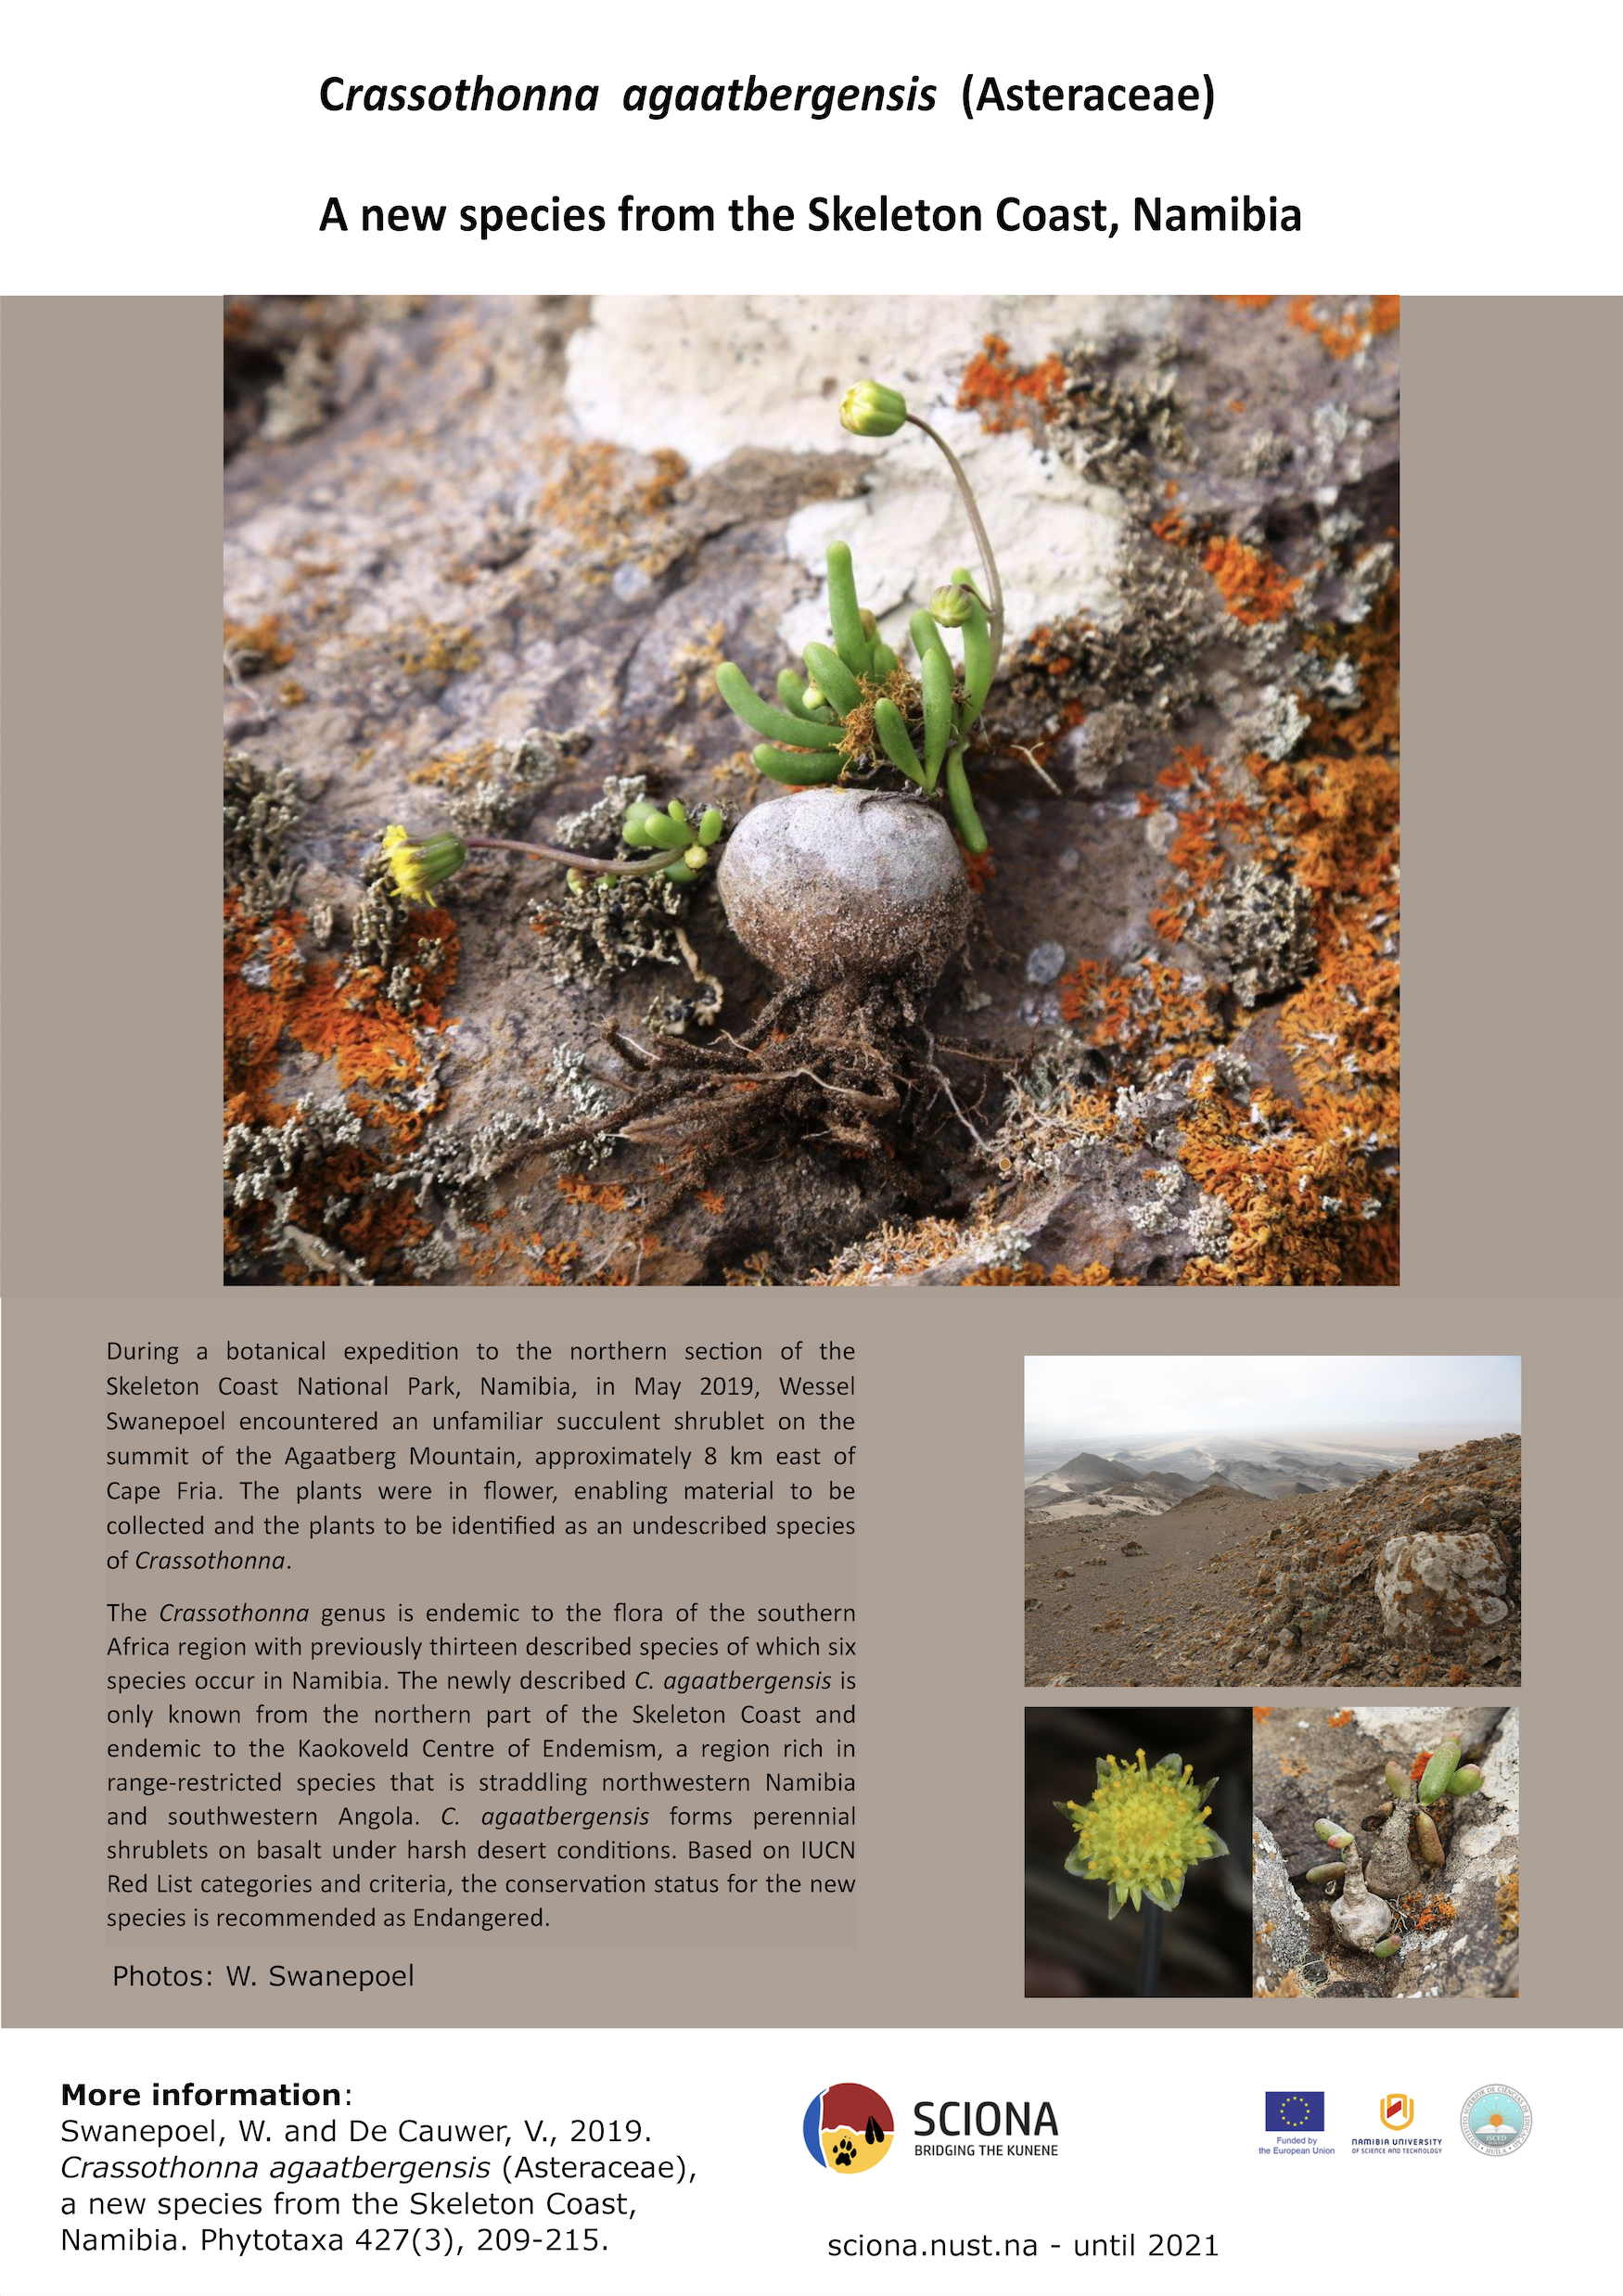 Poster demonstrating new succulent species from the Skeleton Coast, Namibia